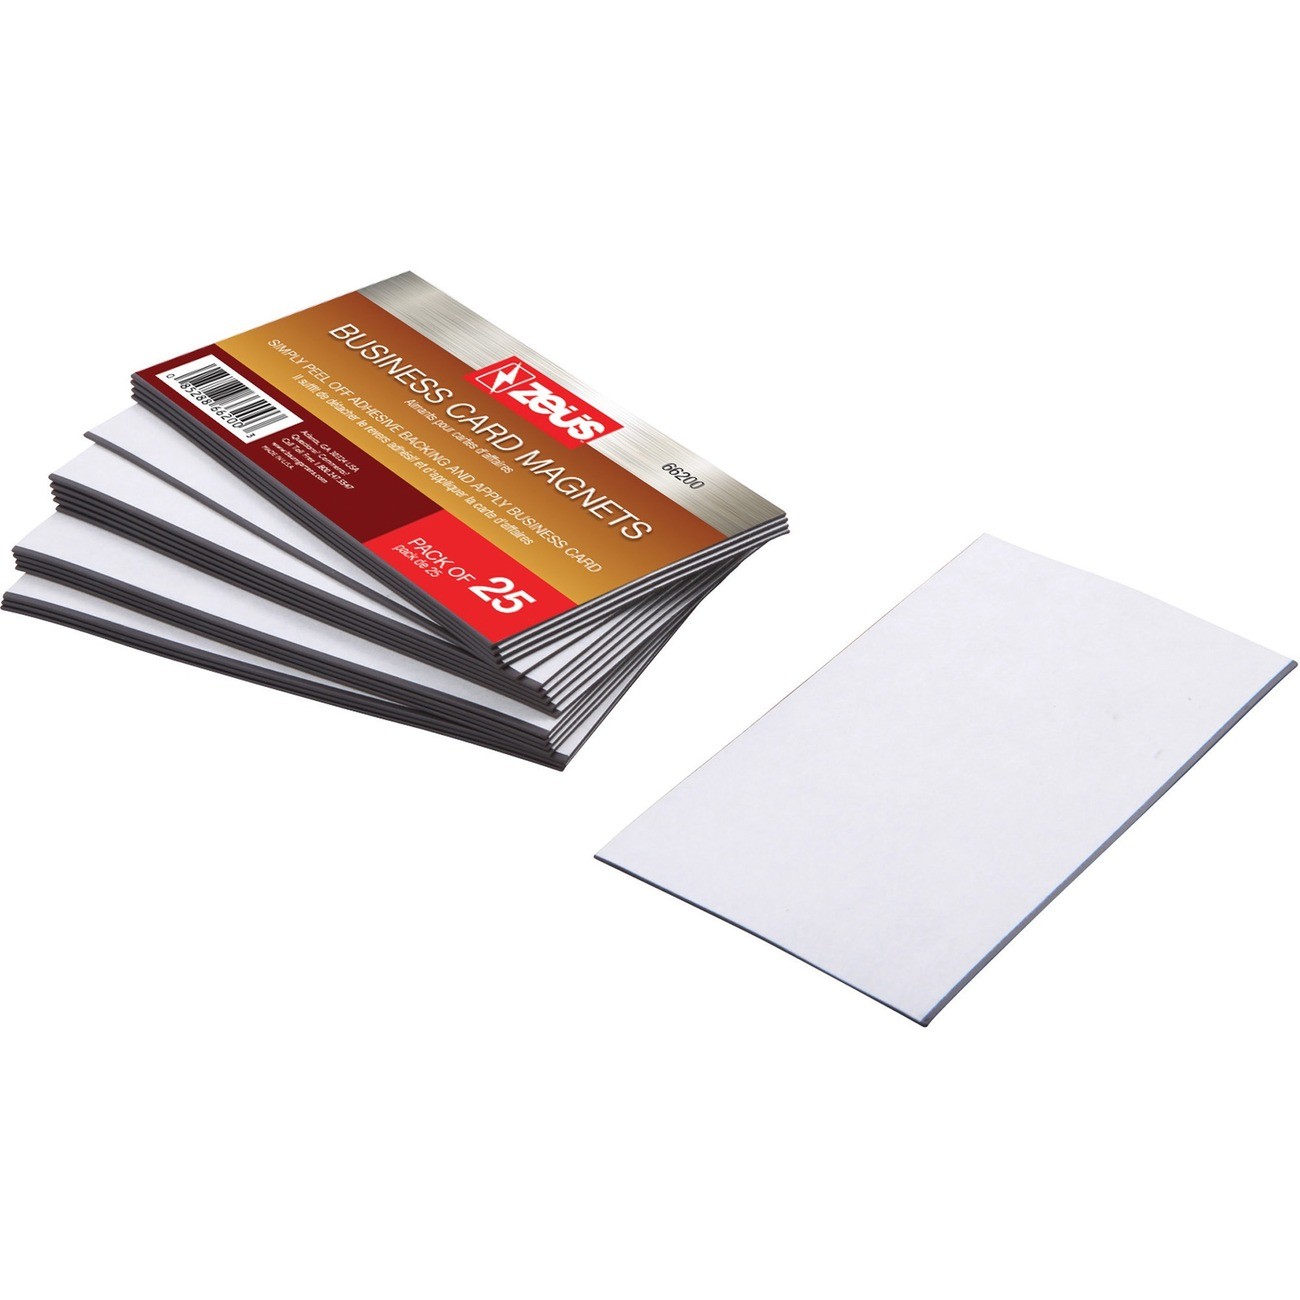 Sns data office supplies paper pads cards stationery adhesive backed magnets are cut to business card size they are perfect for small businesses as a marketing tool easily adhere your pre printed business colourmoves